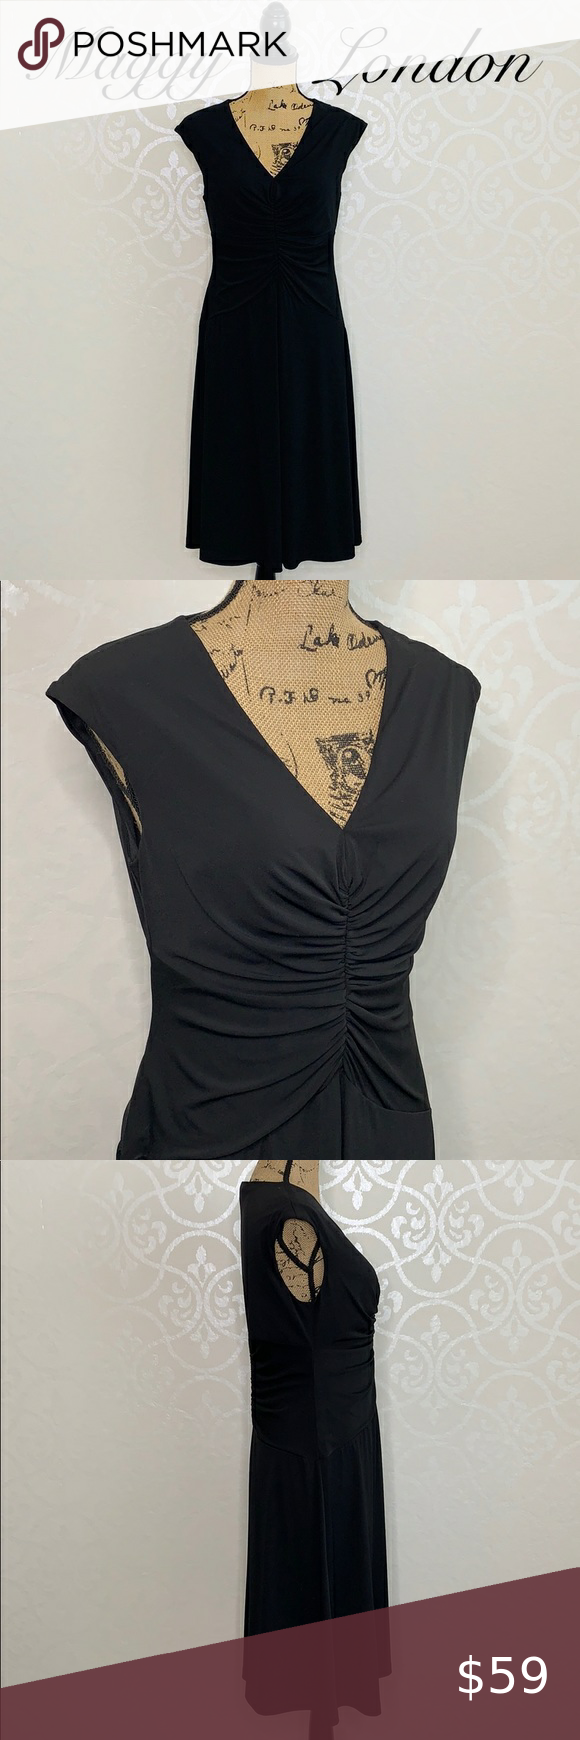 Maggy London Little Black Dress Size 12 This Dress Is Gorgeous And Is The Perfect Little Black Dress It Has Ca Little Black Dress Maggy London Dresses Dresses [ 1740 x 580 Pixel ]